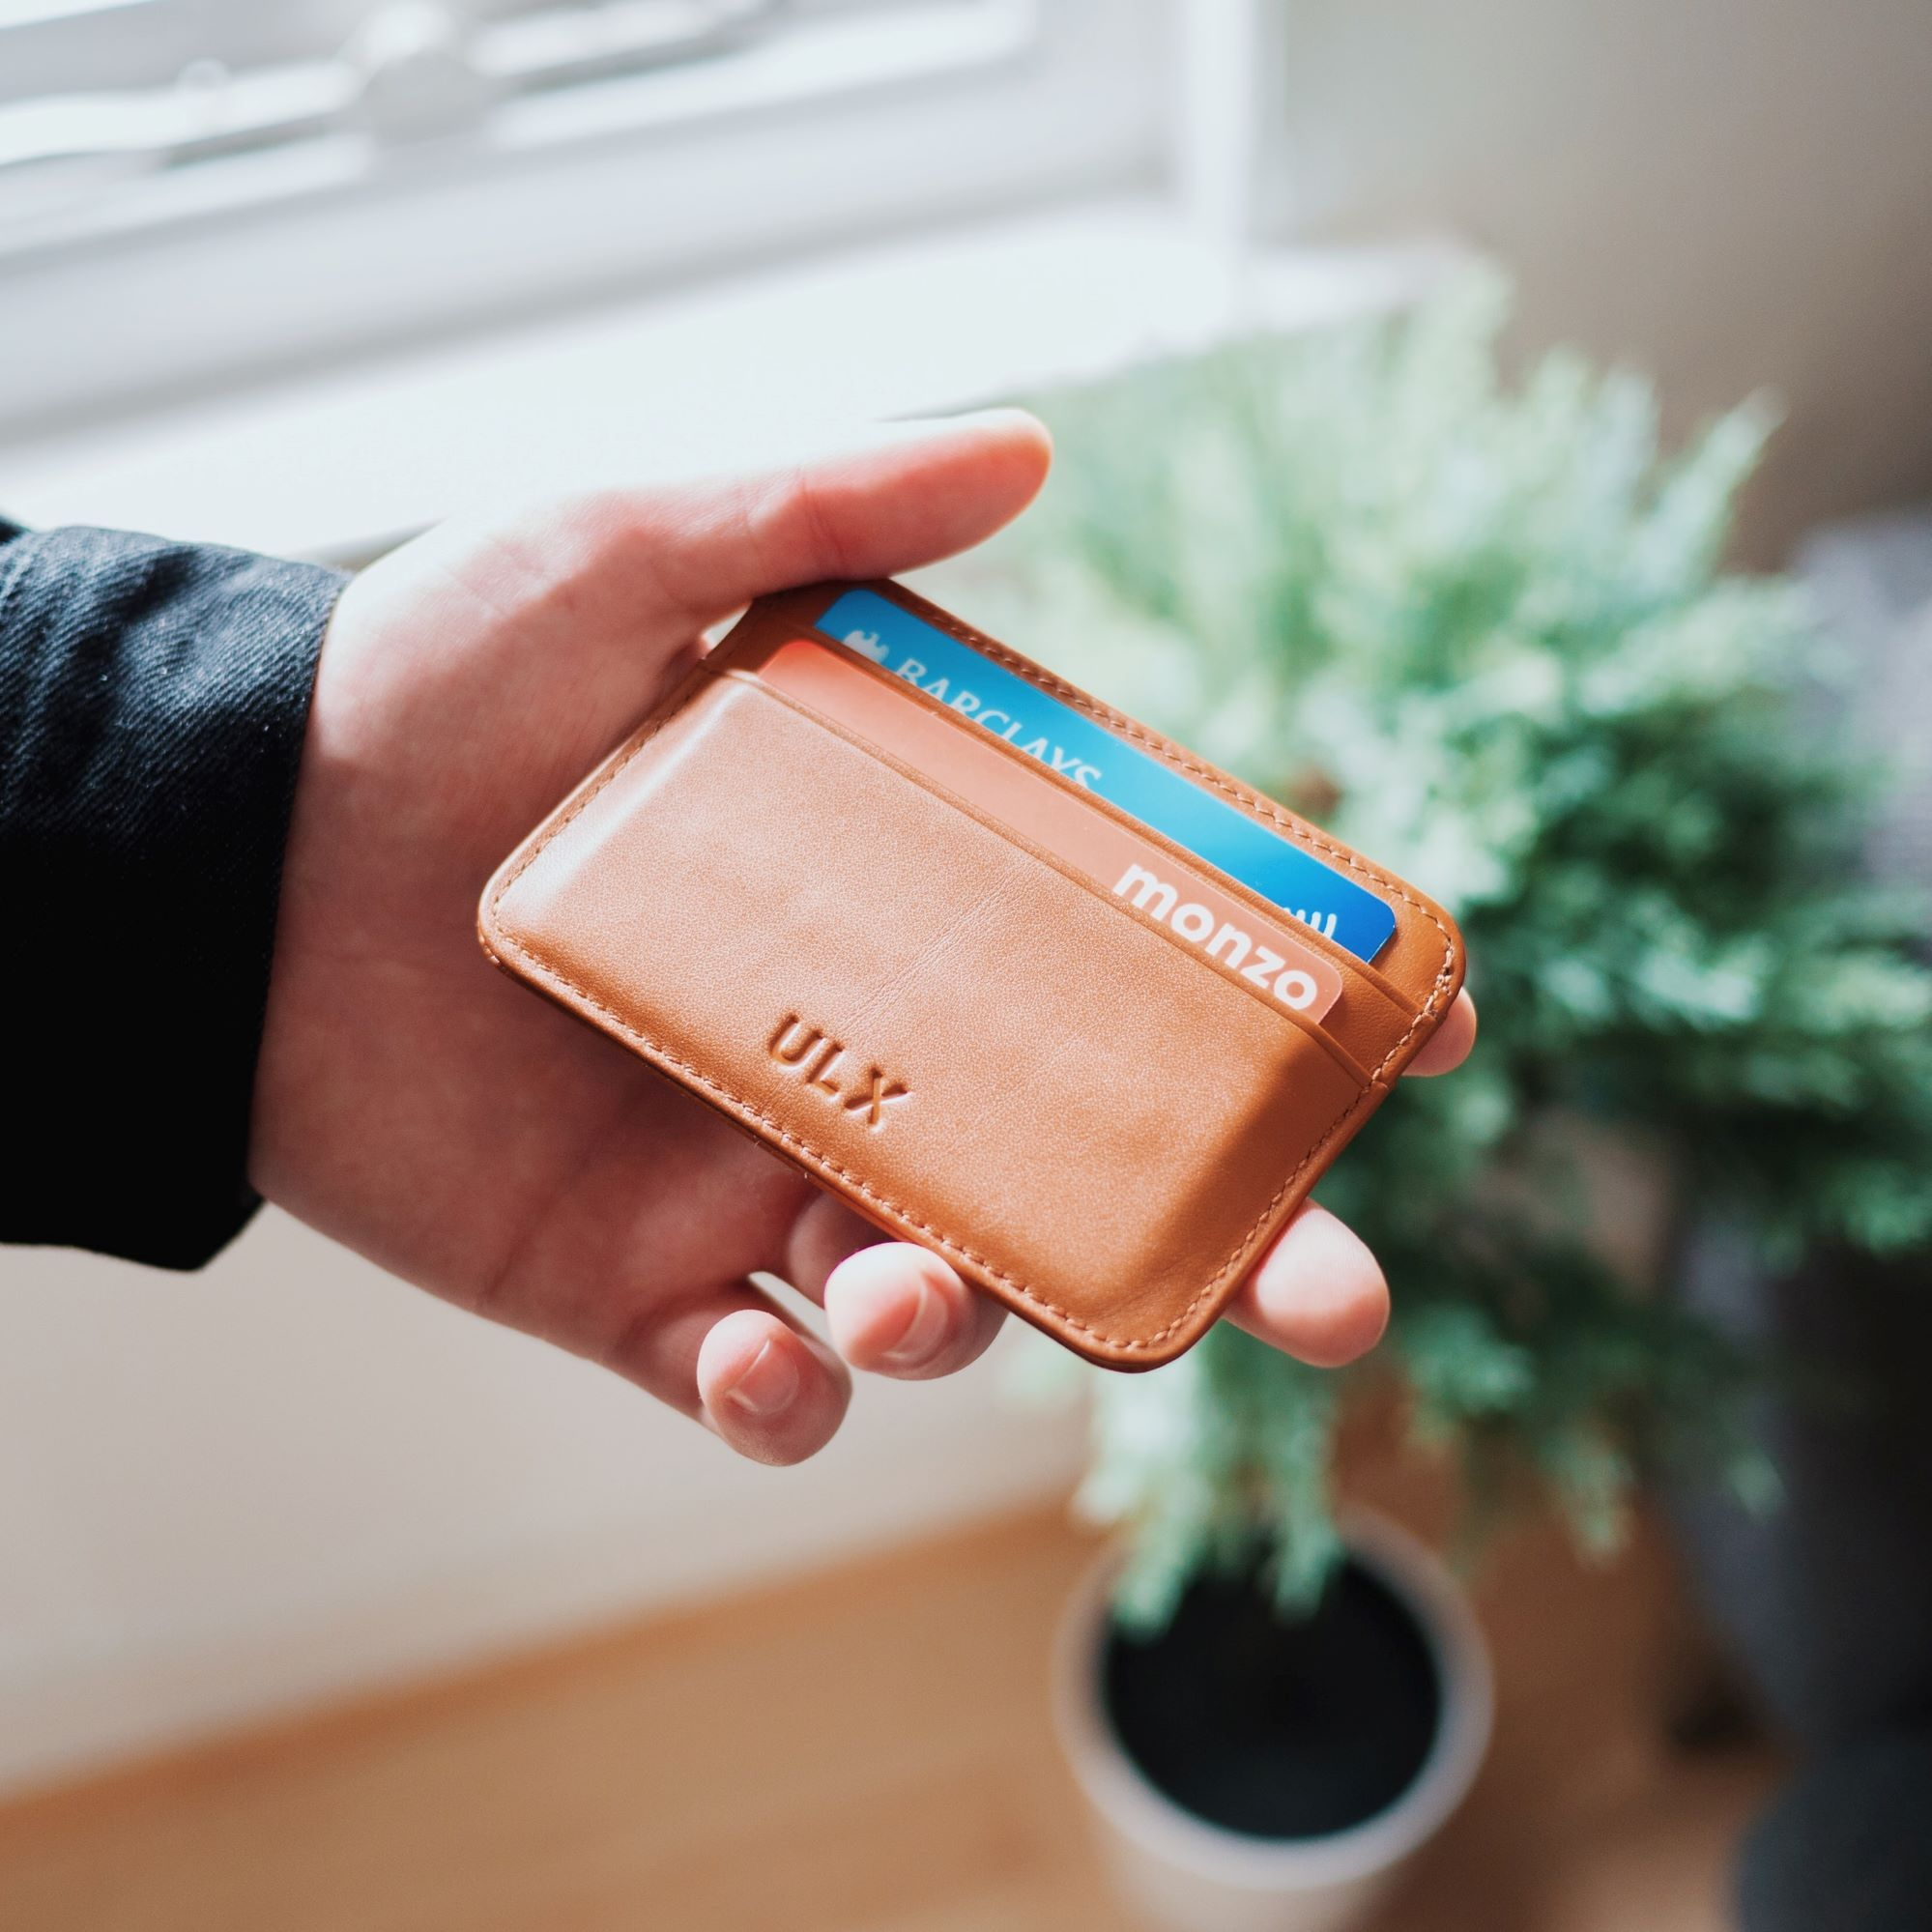 Photo of someone looking at their wallet to see if they have enough money.